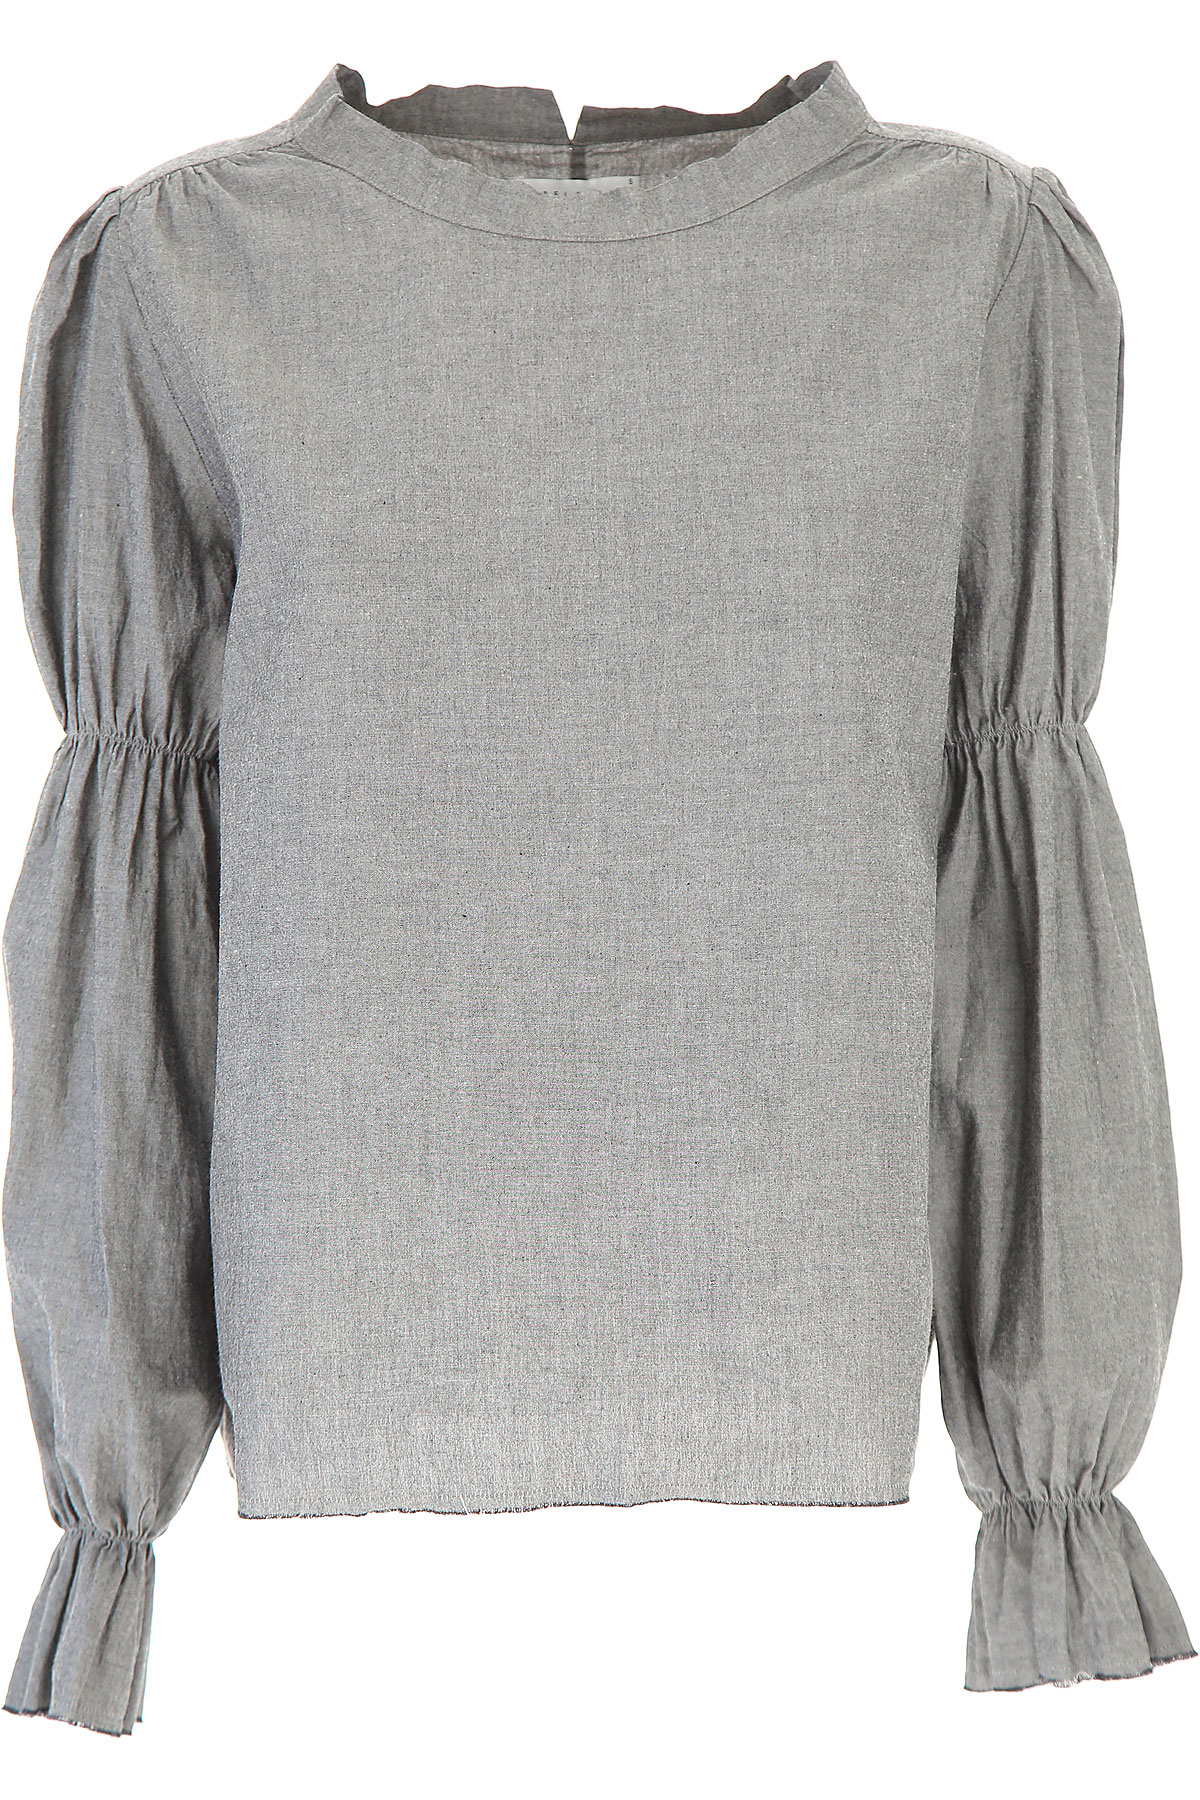 Image of Sibel Saral Top for Women, Grey, Cotton, 2017, 4 6